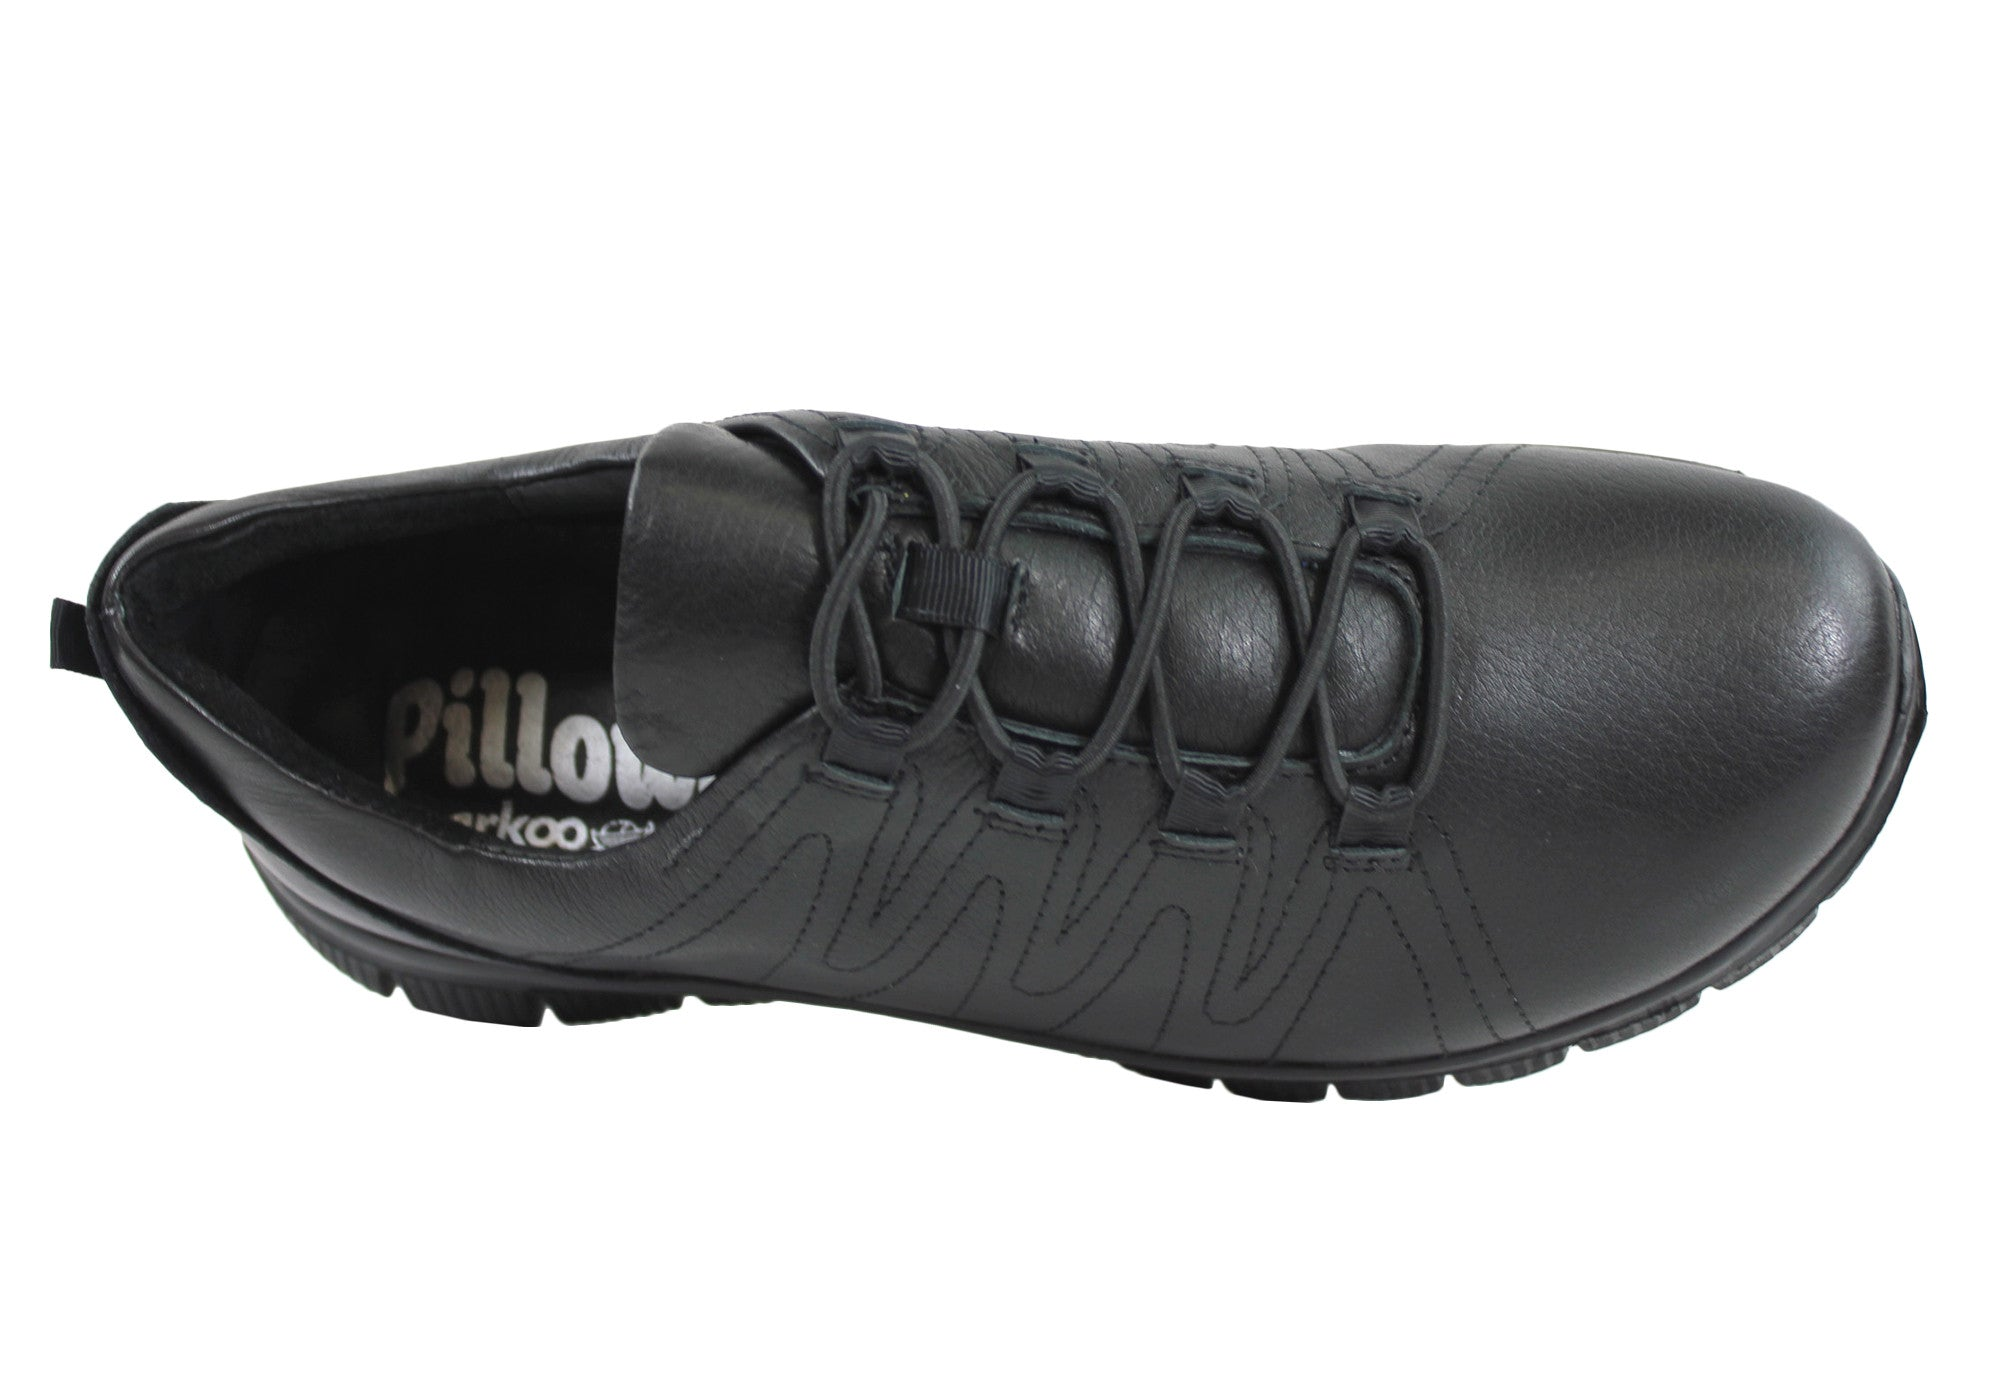 Arkoo Pillows Pita Womens Comfortable Casual Shoes